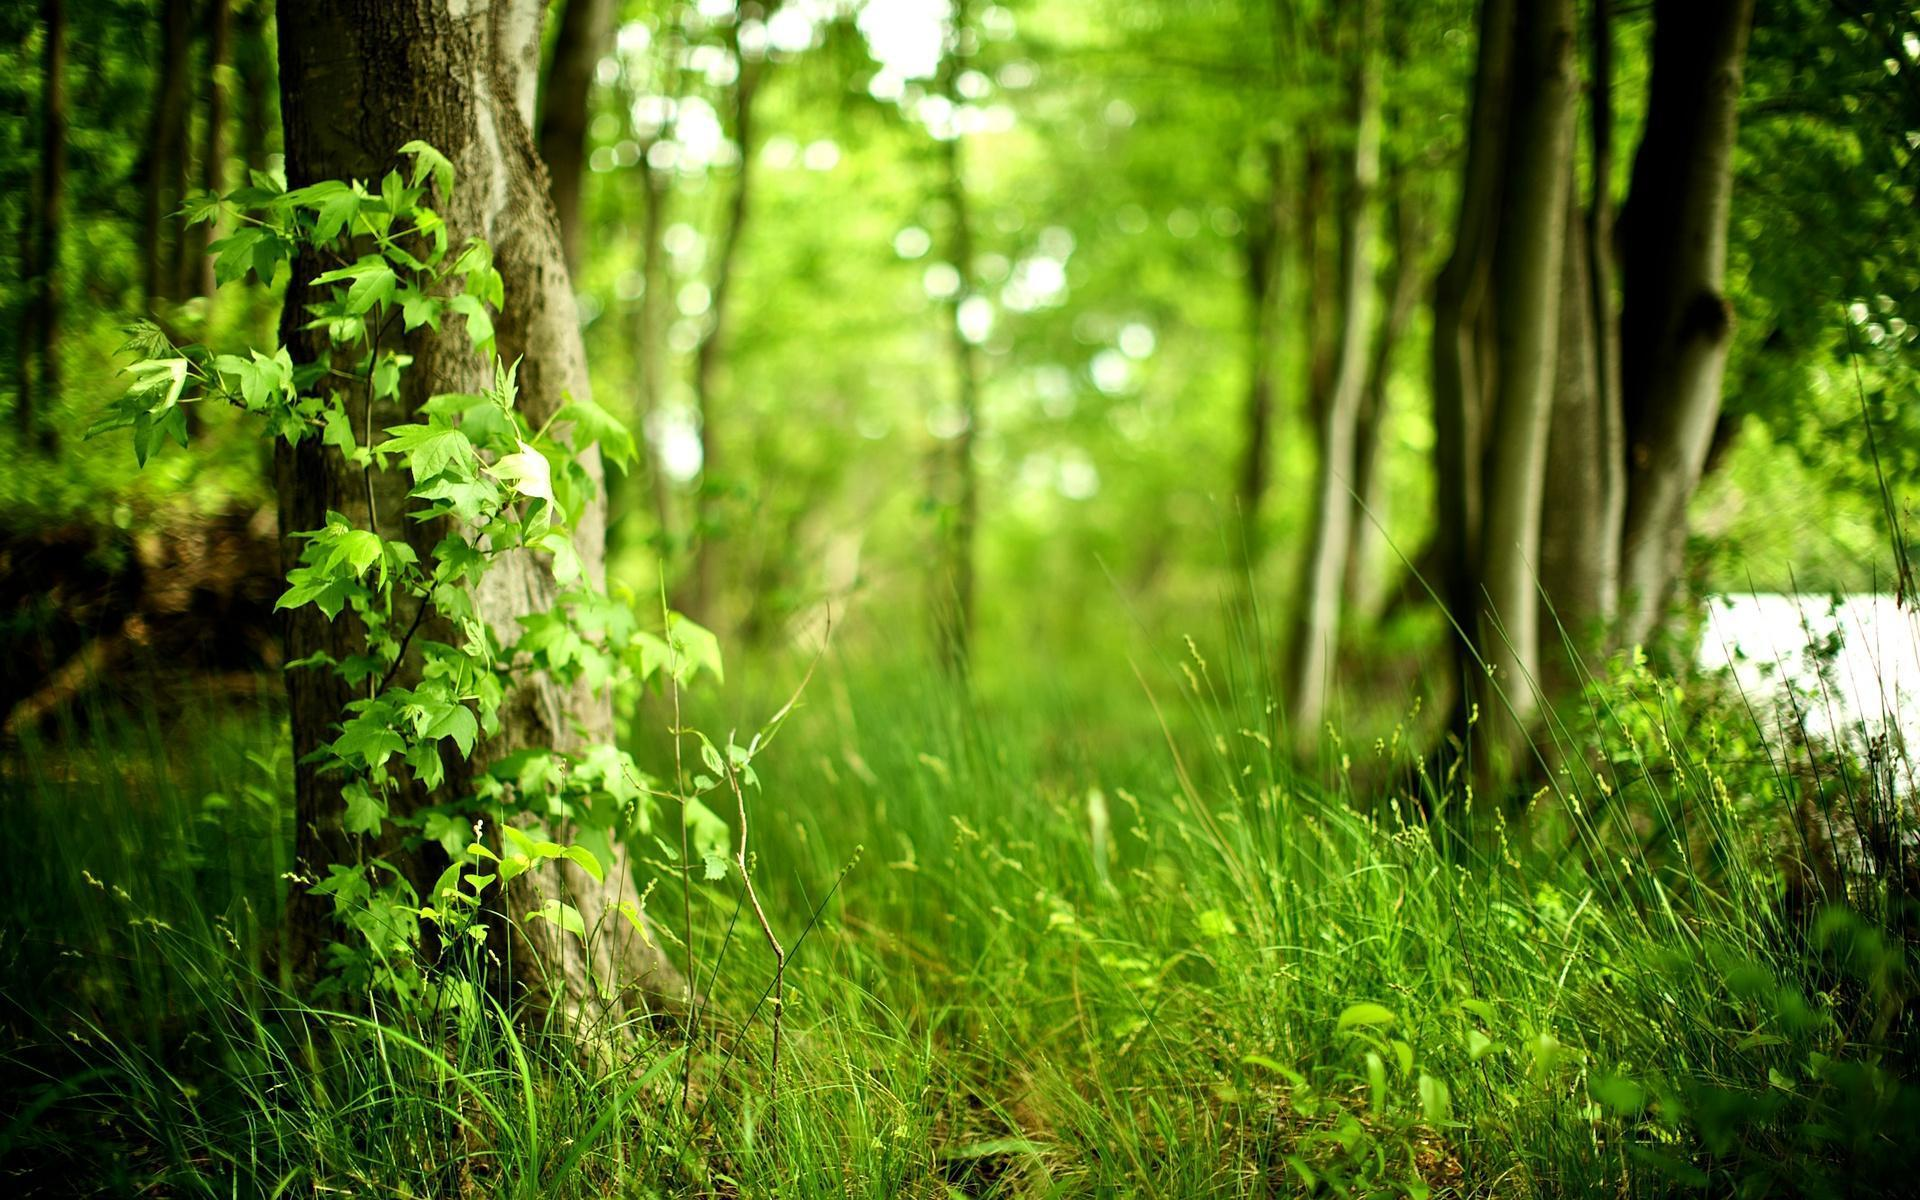 HD Green Forest Wallpaper